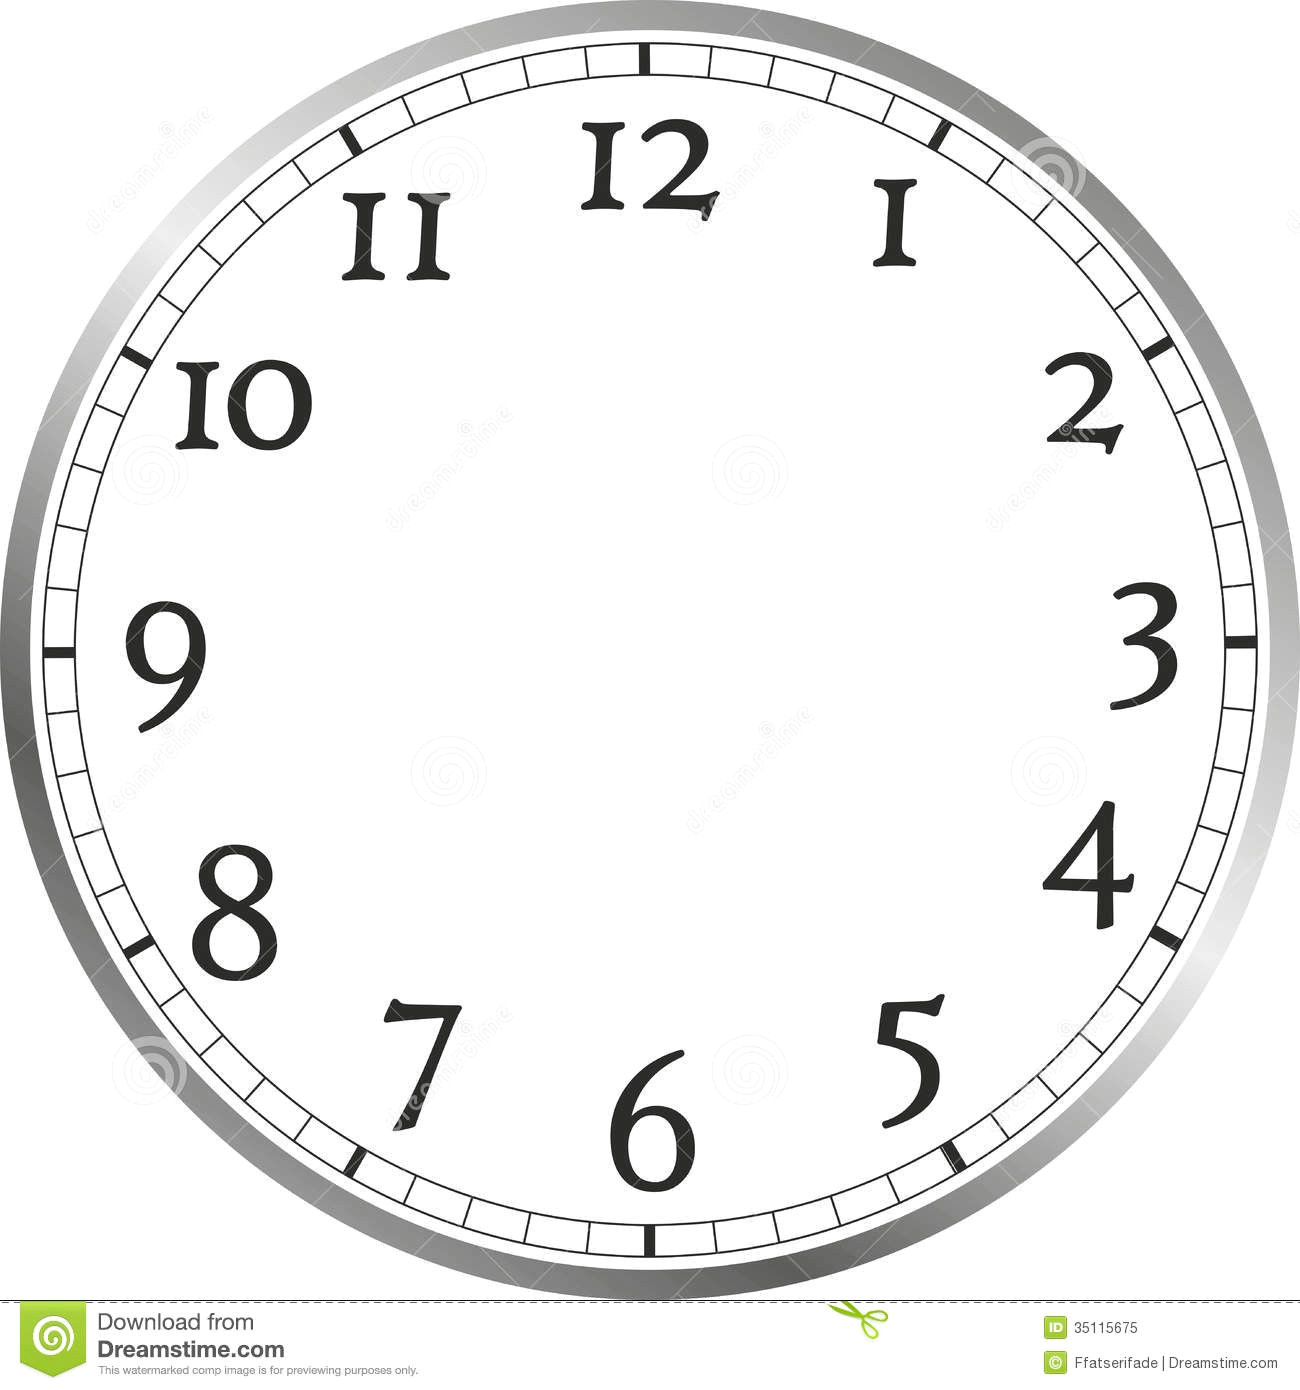 free clip art picture of a clock face without hands school clipart